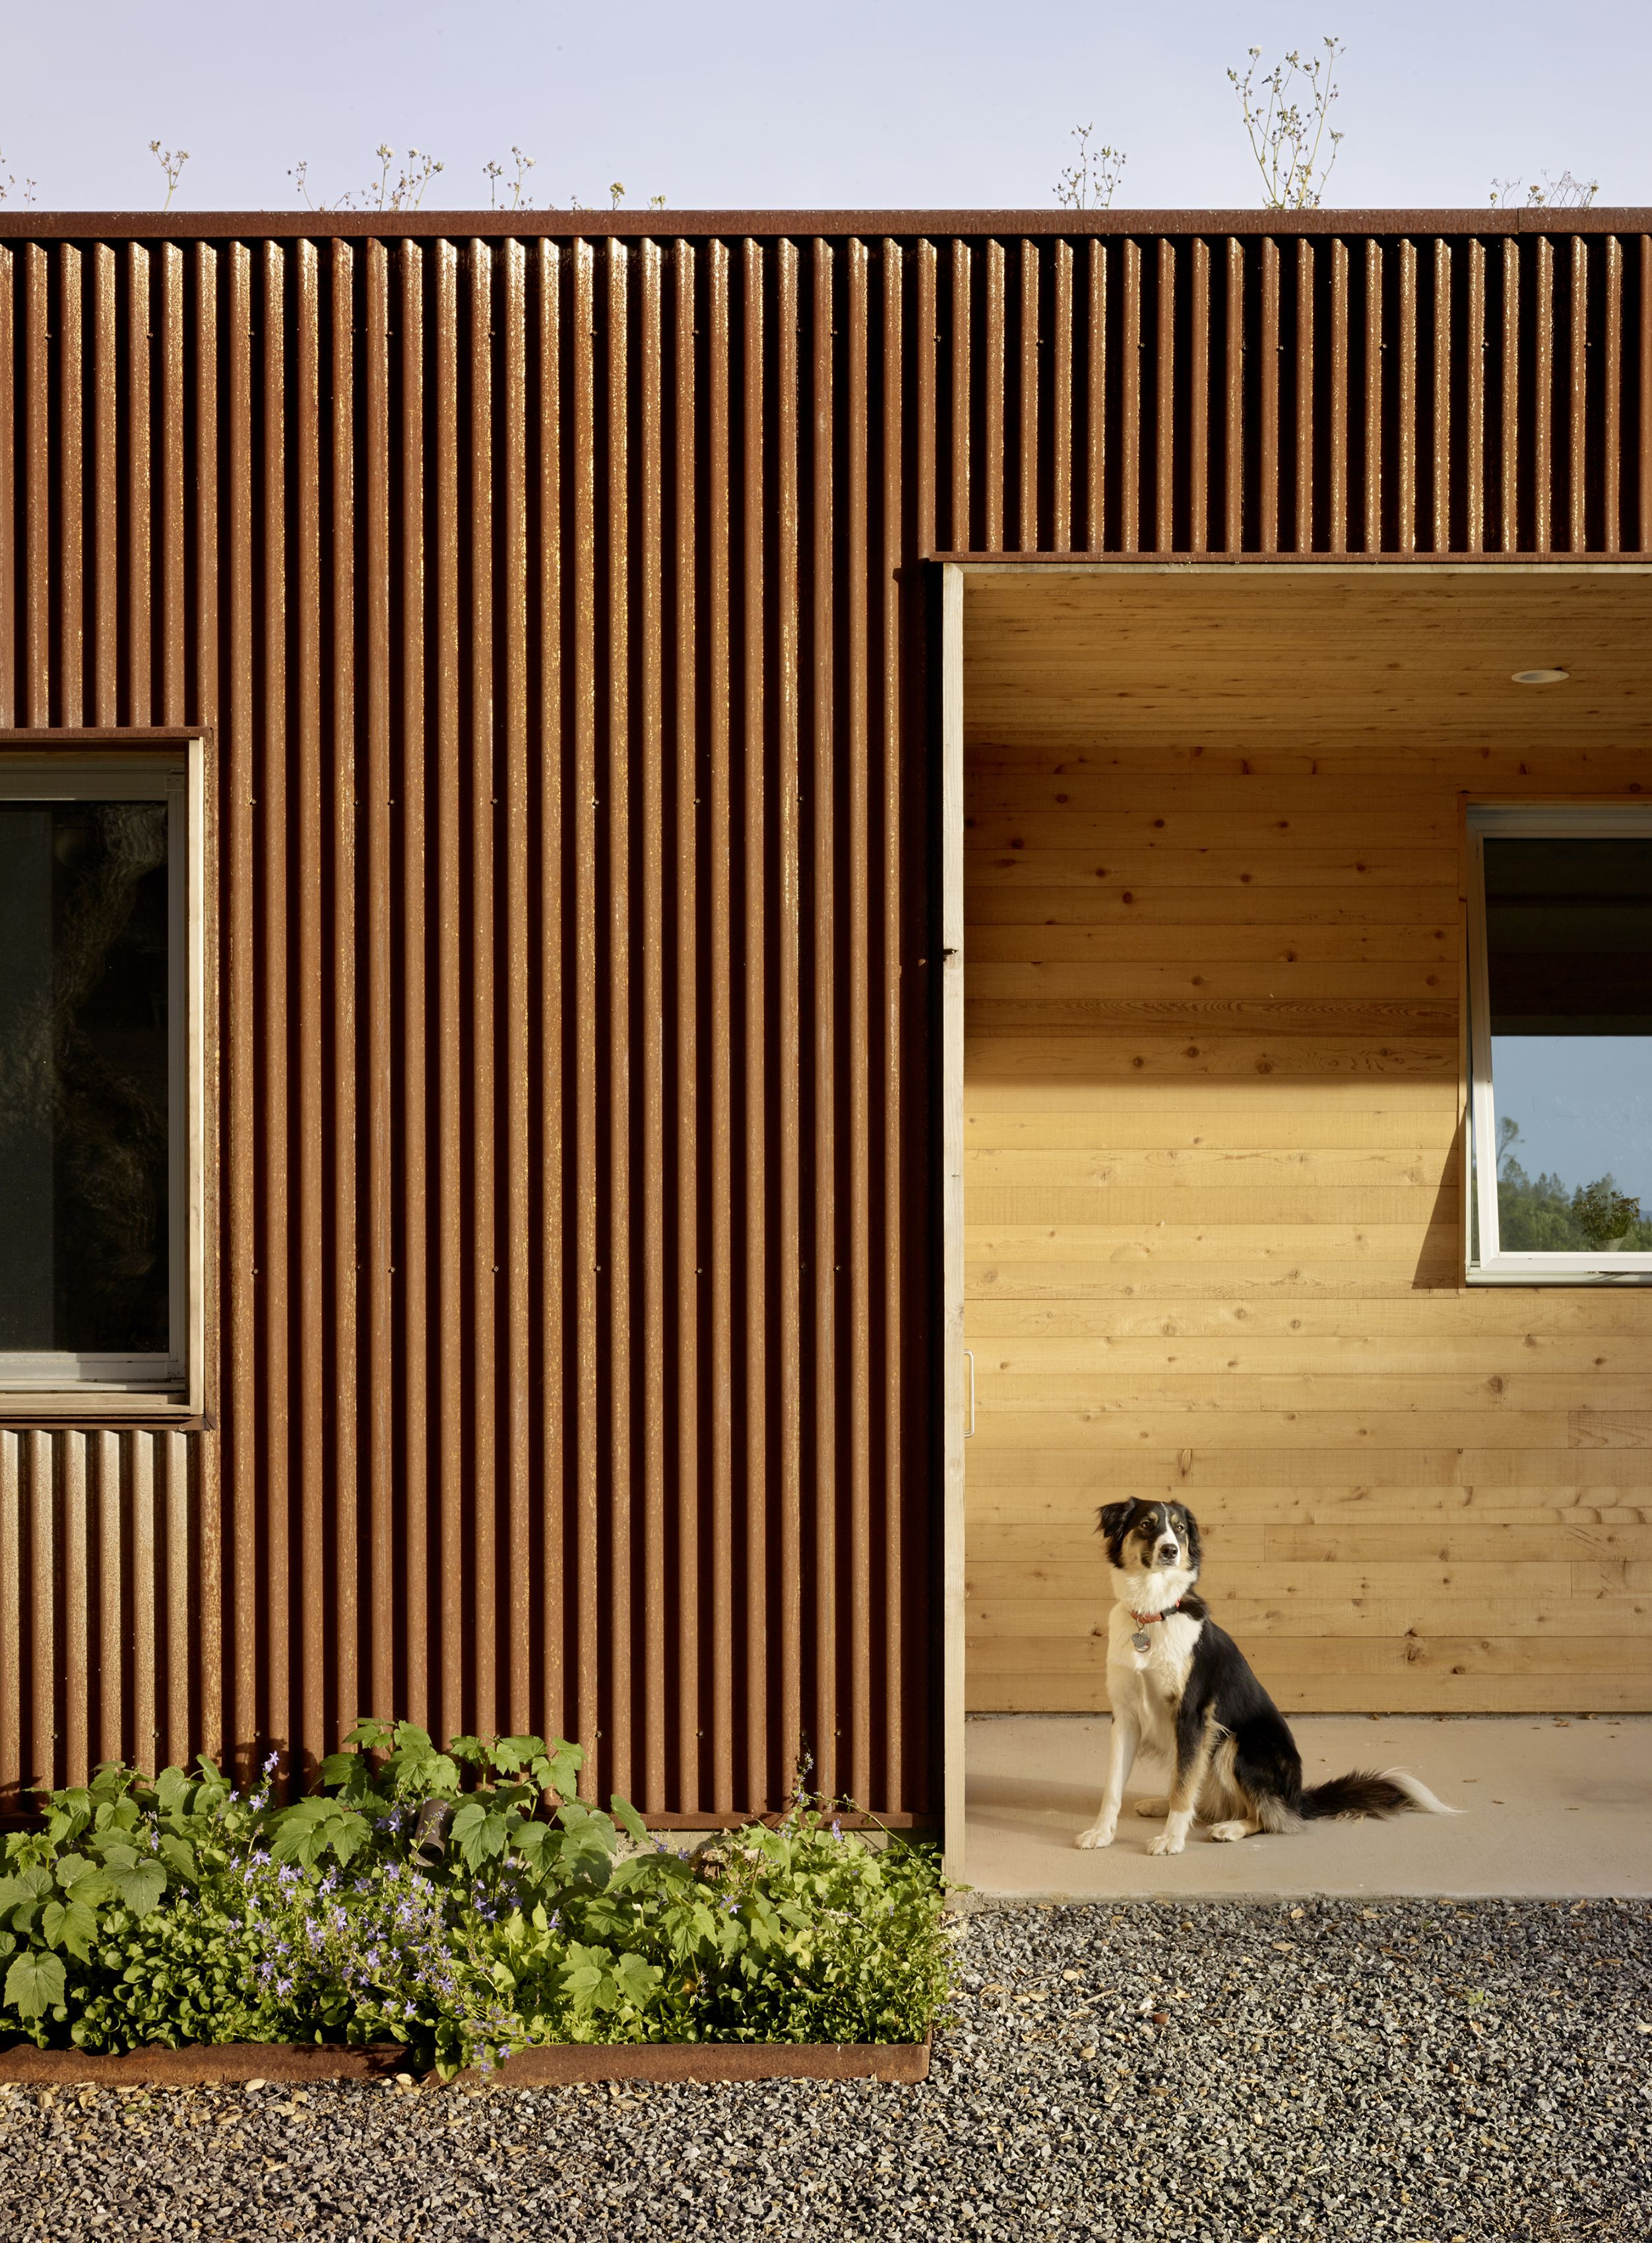 Corten corrugated metal wall reclaimed redwood panel wall living roof cloverdale residence turnbull griffin haesloop